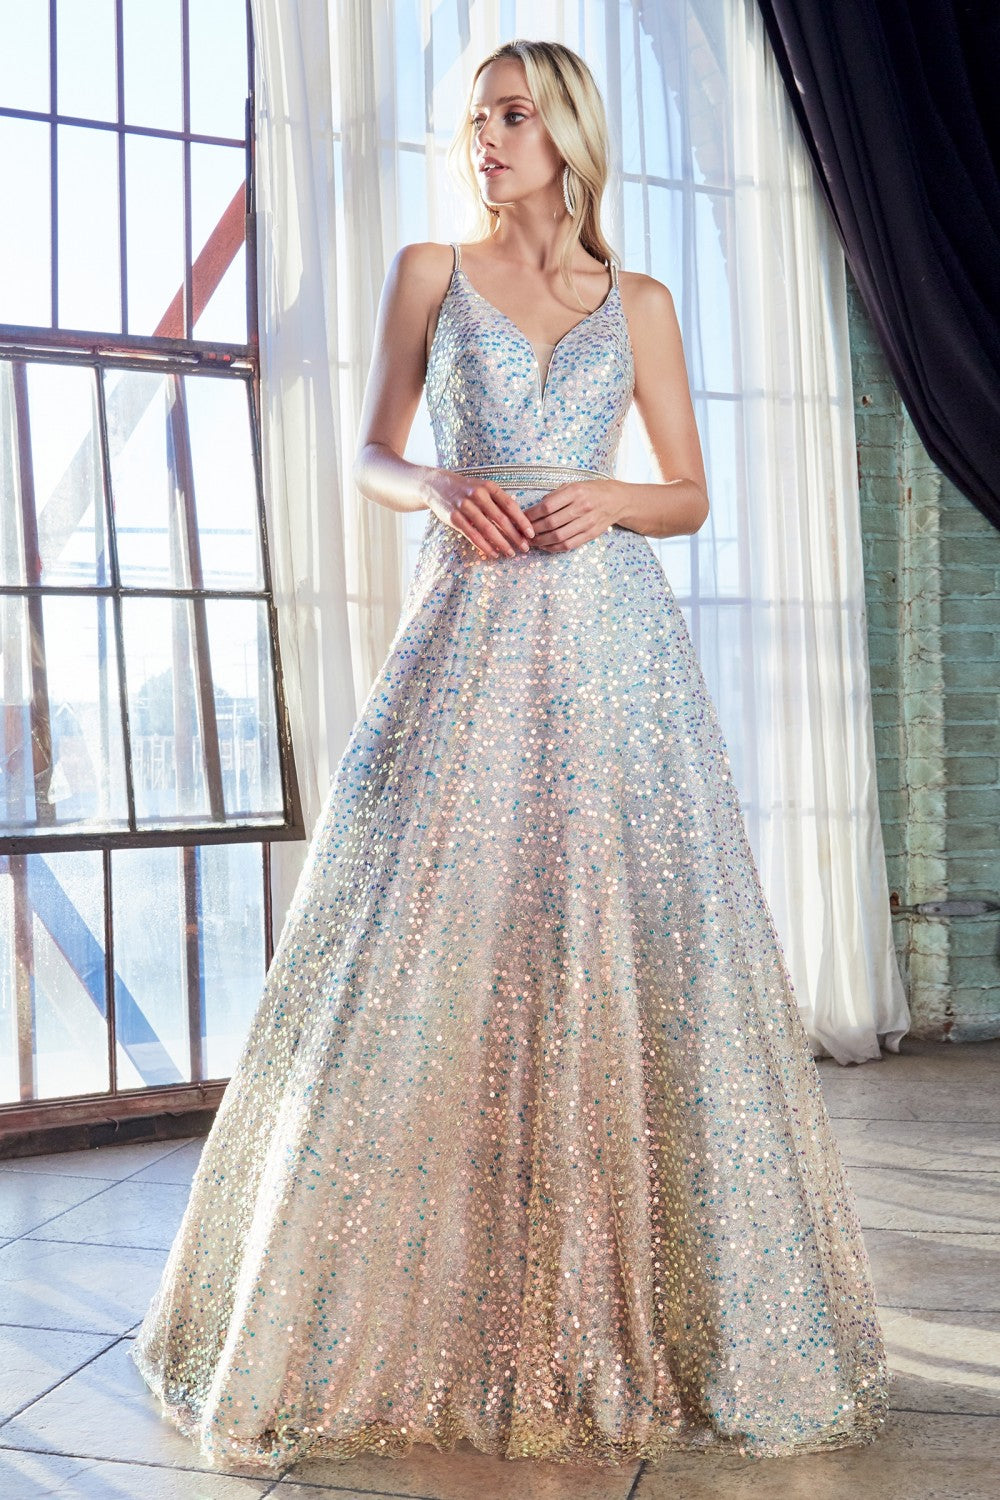 CD CW148 - A Line Ball Gown with Full Opal Sequin & Criss Cross Back - Diggz Prom